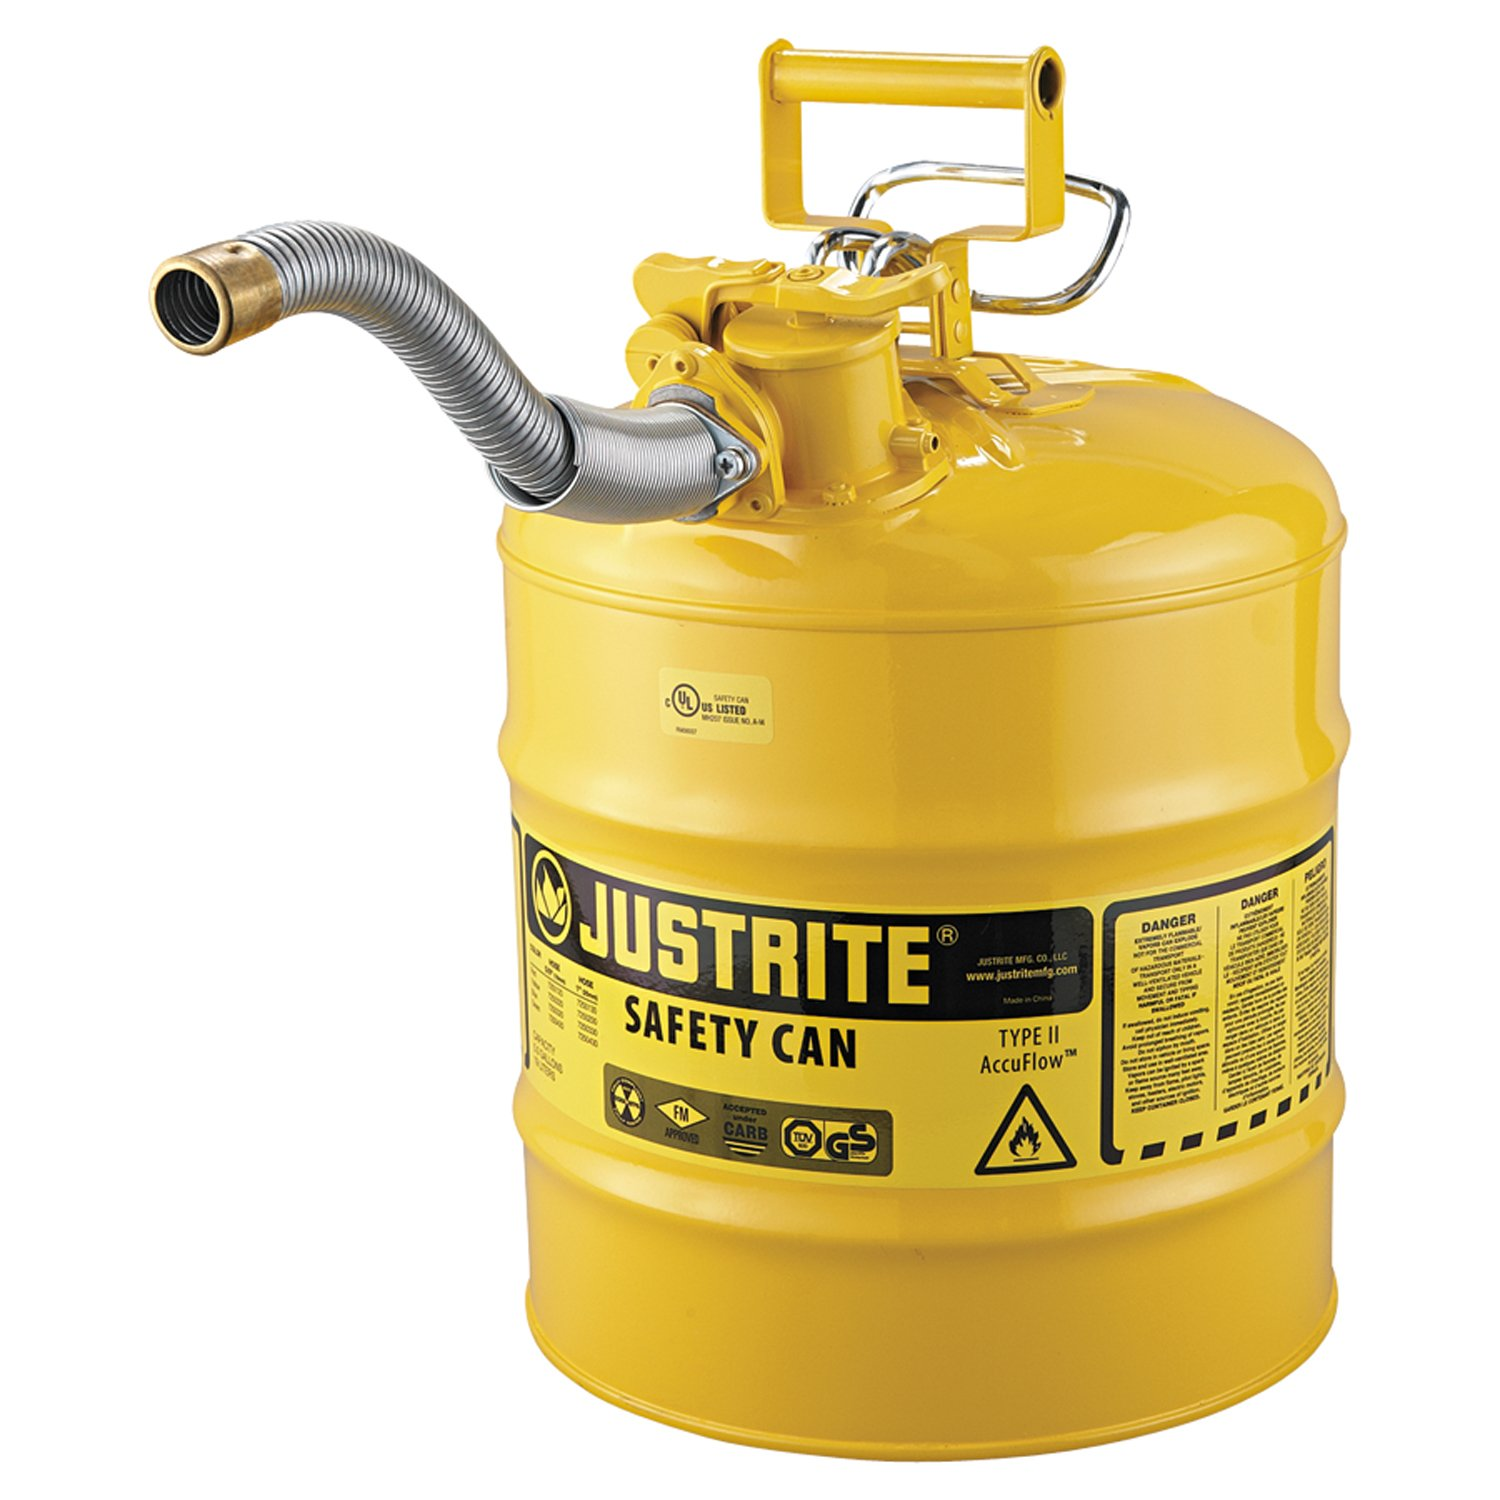 Justrite 7250230 AccuFlow 5 Gallon, 11.75'' OD x 17.50'' H Galvanized Steel Type II Yellow Safety Can With 1'' Flexible Spout